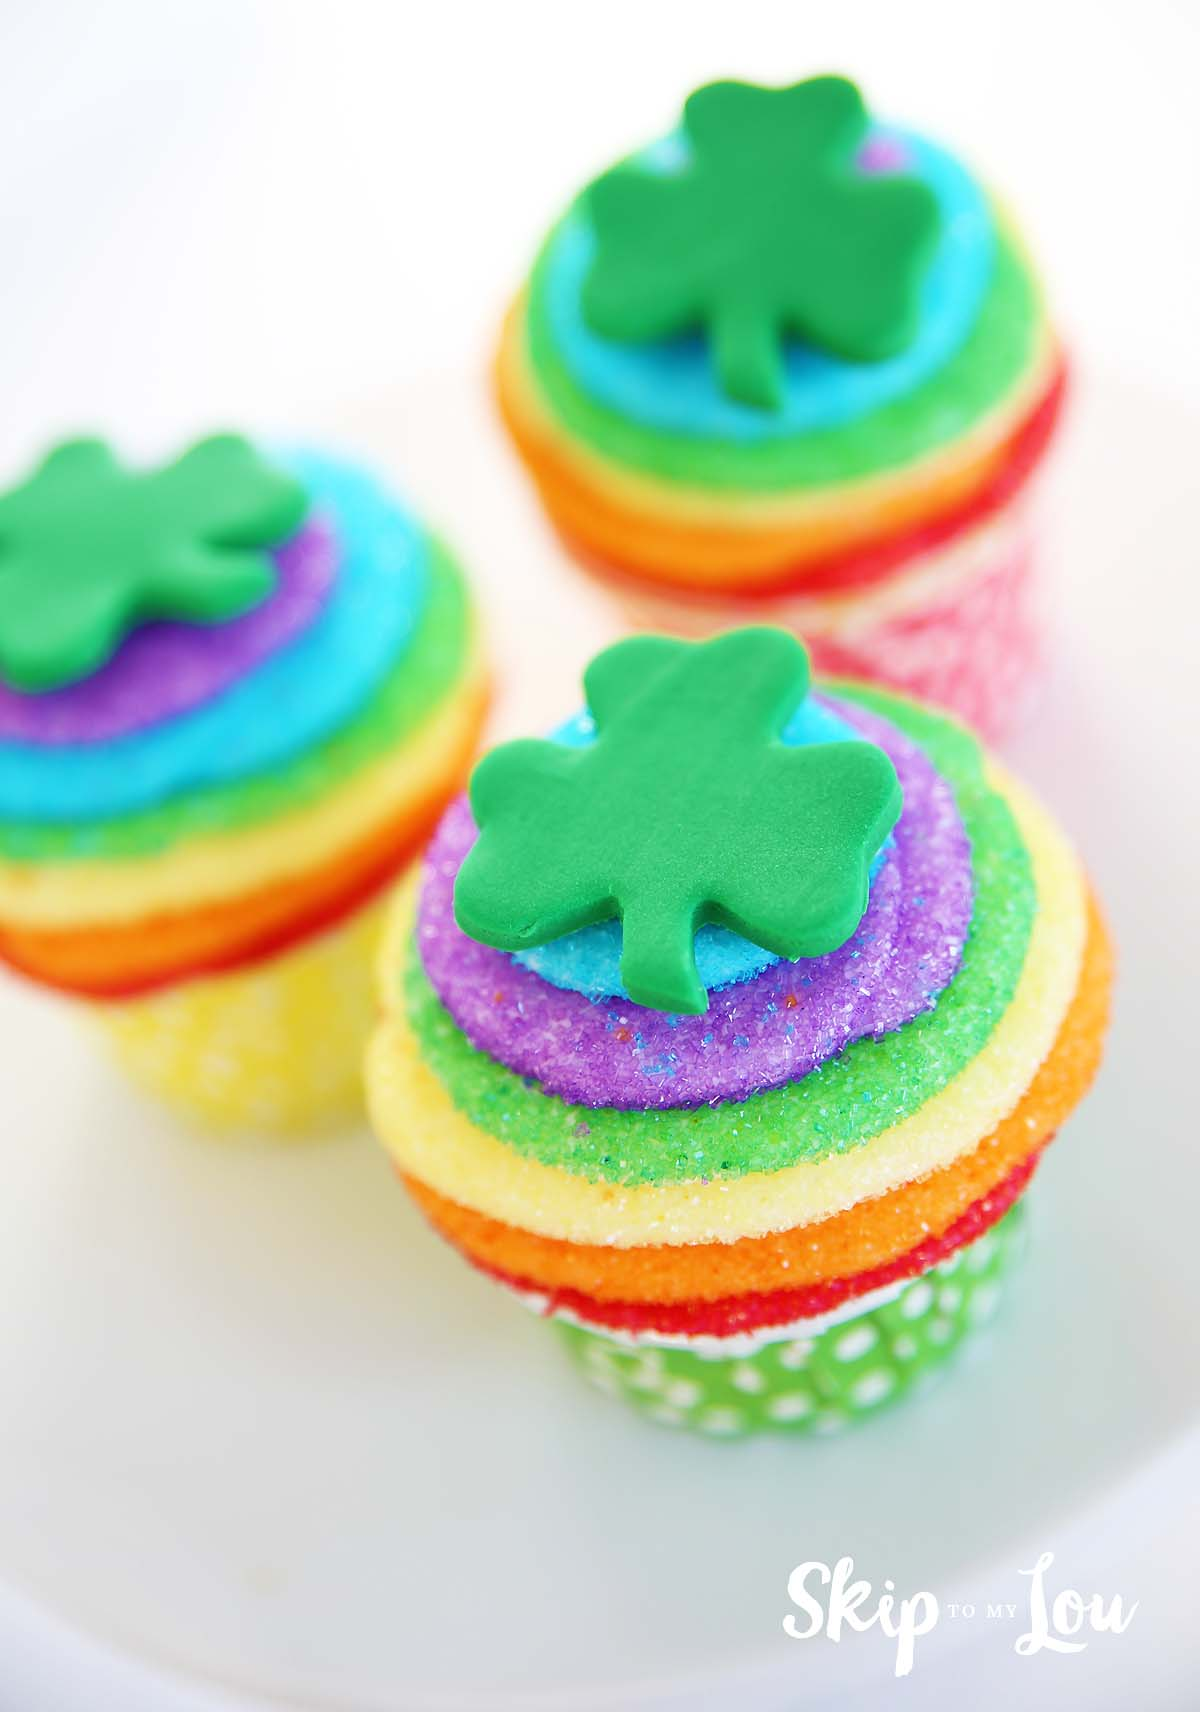 three sanding sugar rainbow shamrock decorated cupcakes